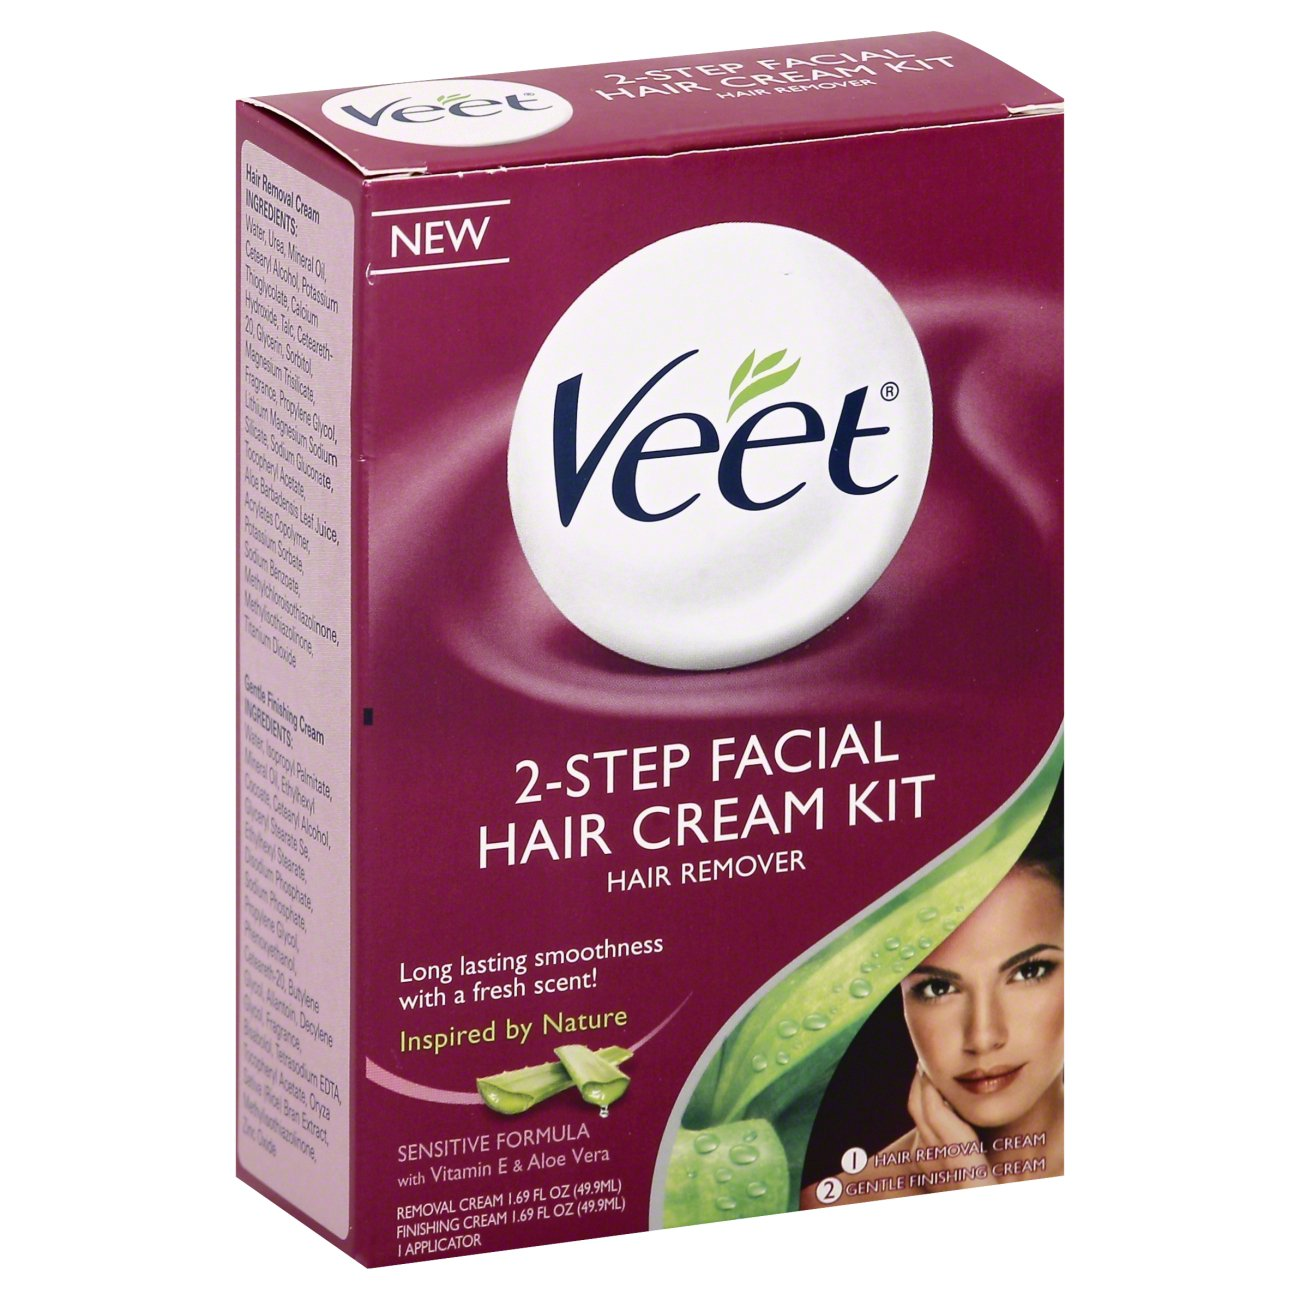 Veet 2 Step Facial Hair Cream Kit Hair Remover Shop Depilatories